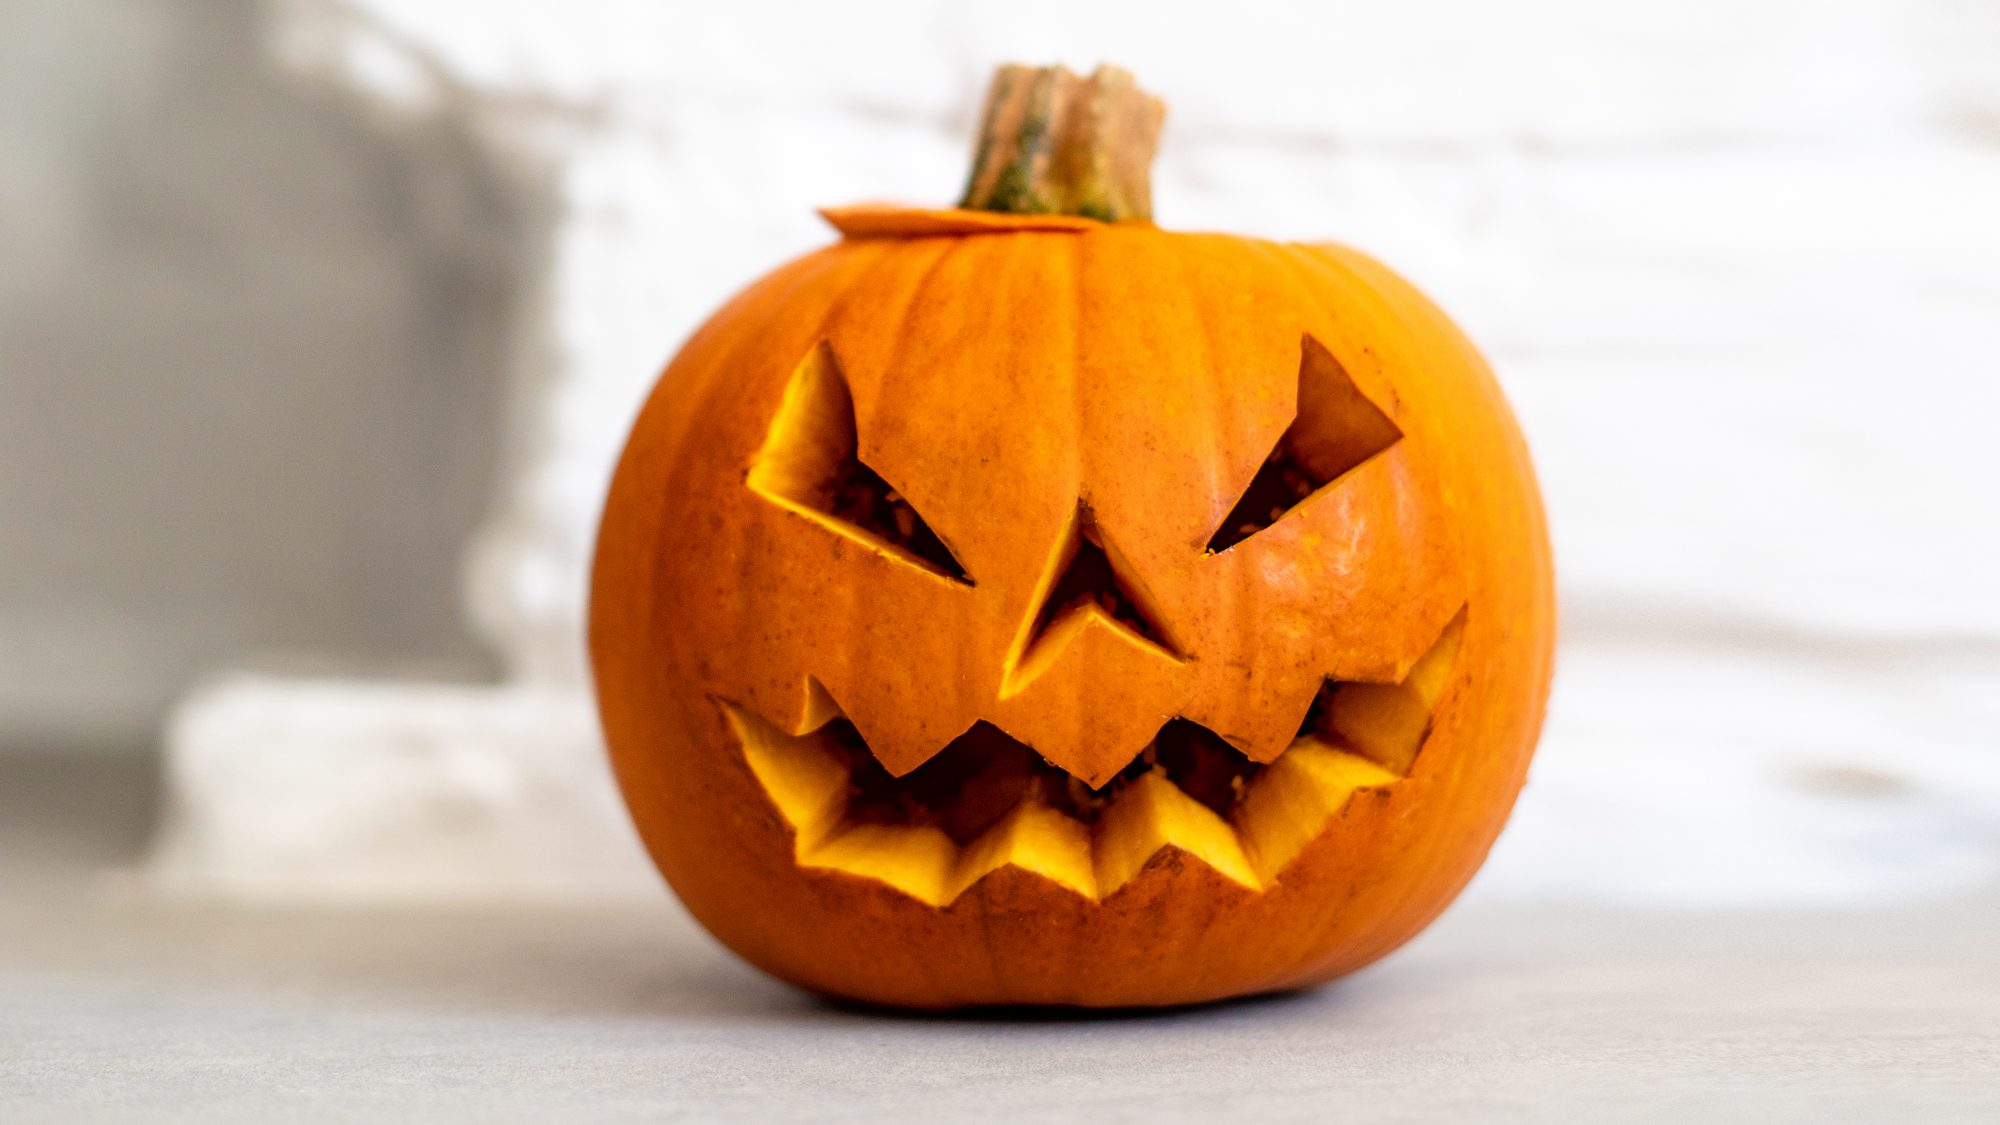 19 Pumpkin Carving Stencils for the Best Jack-o'-Lanterns on the Block